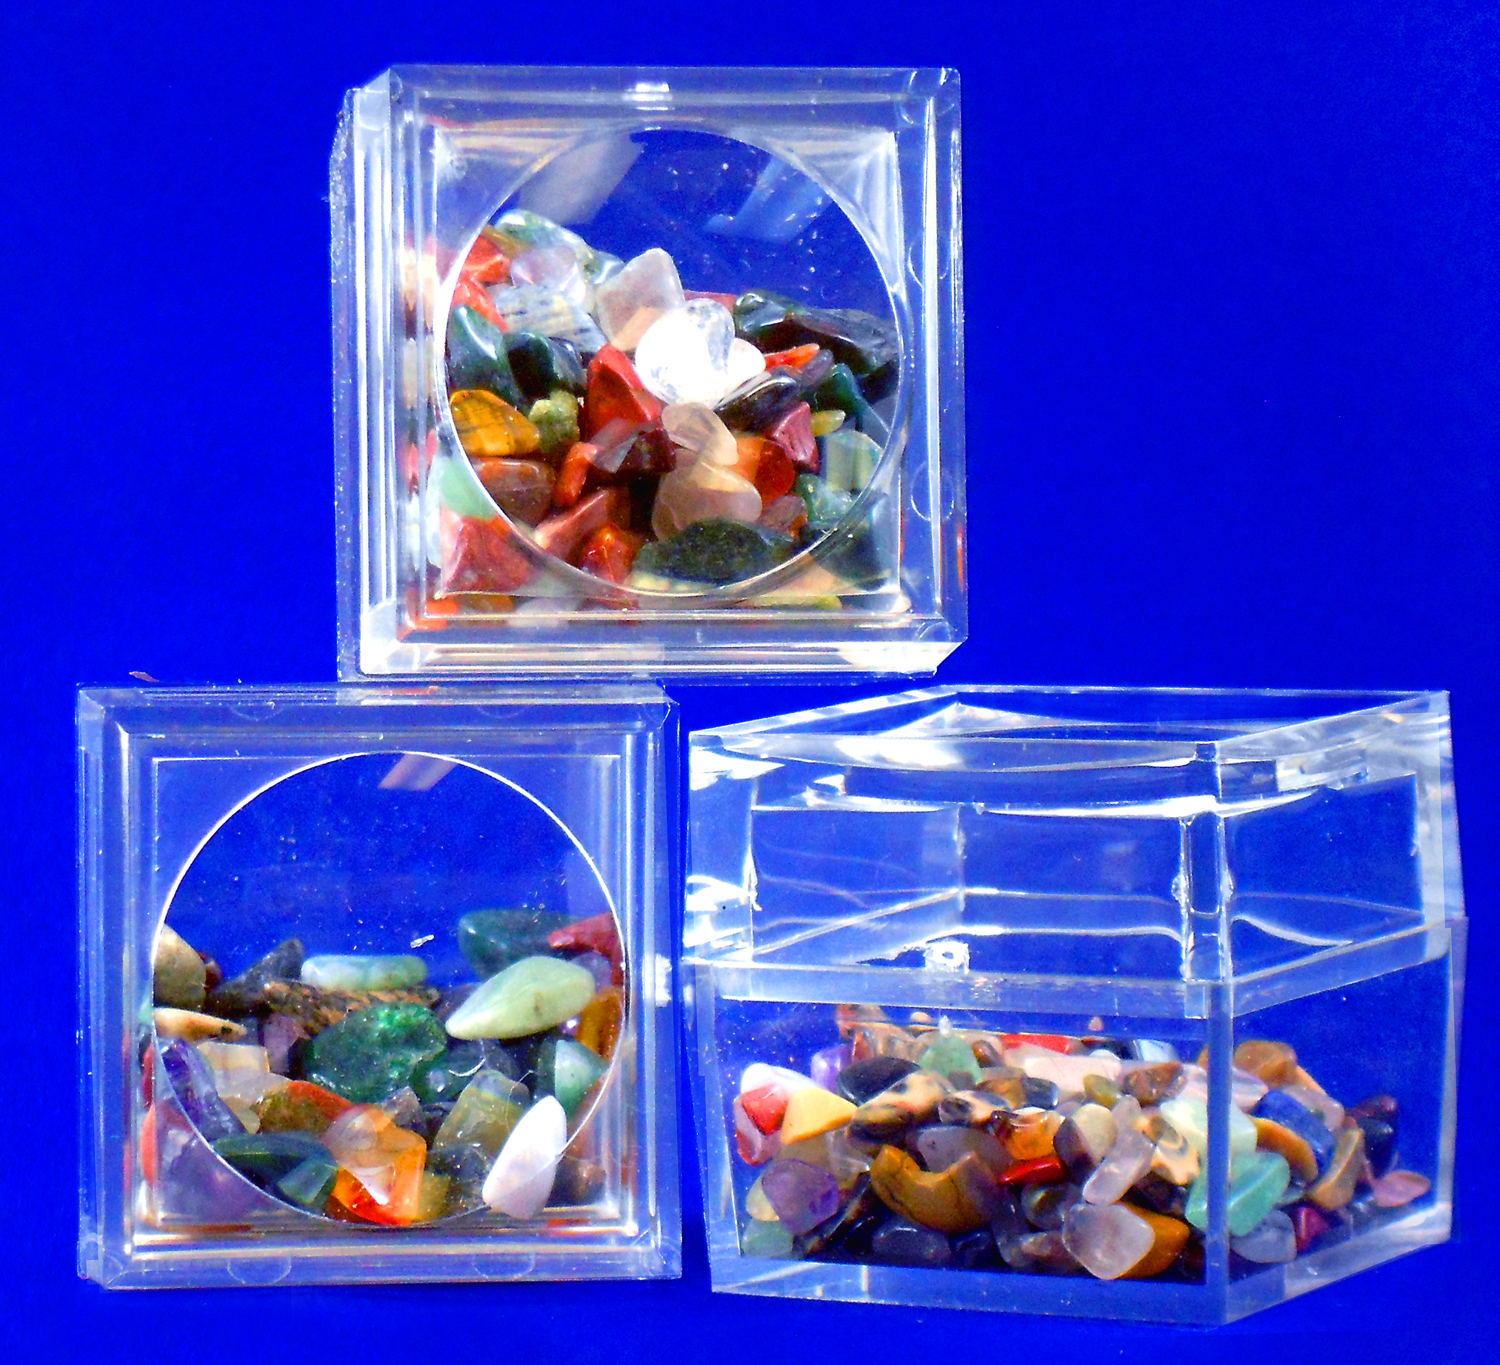 Missing image <rock magbox_web.jpg> Group: 395 - MAGNIFYING BOX WITH ROCKS